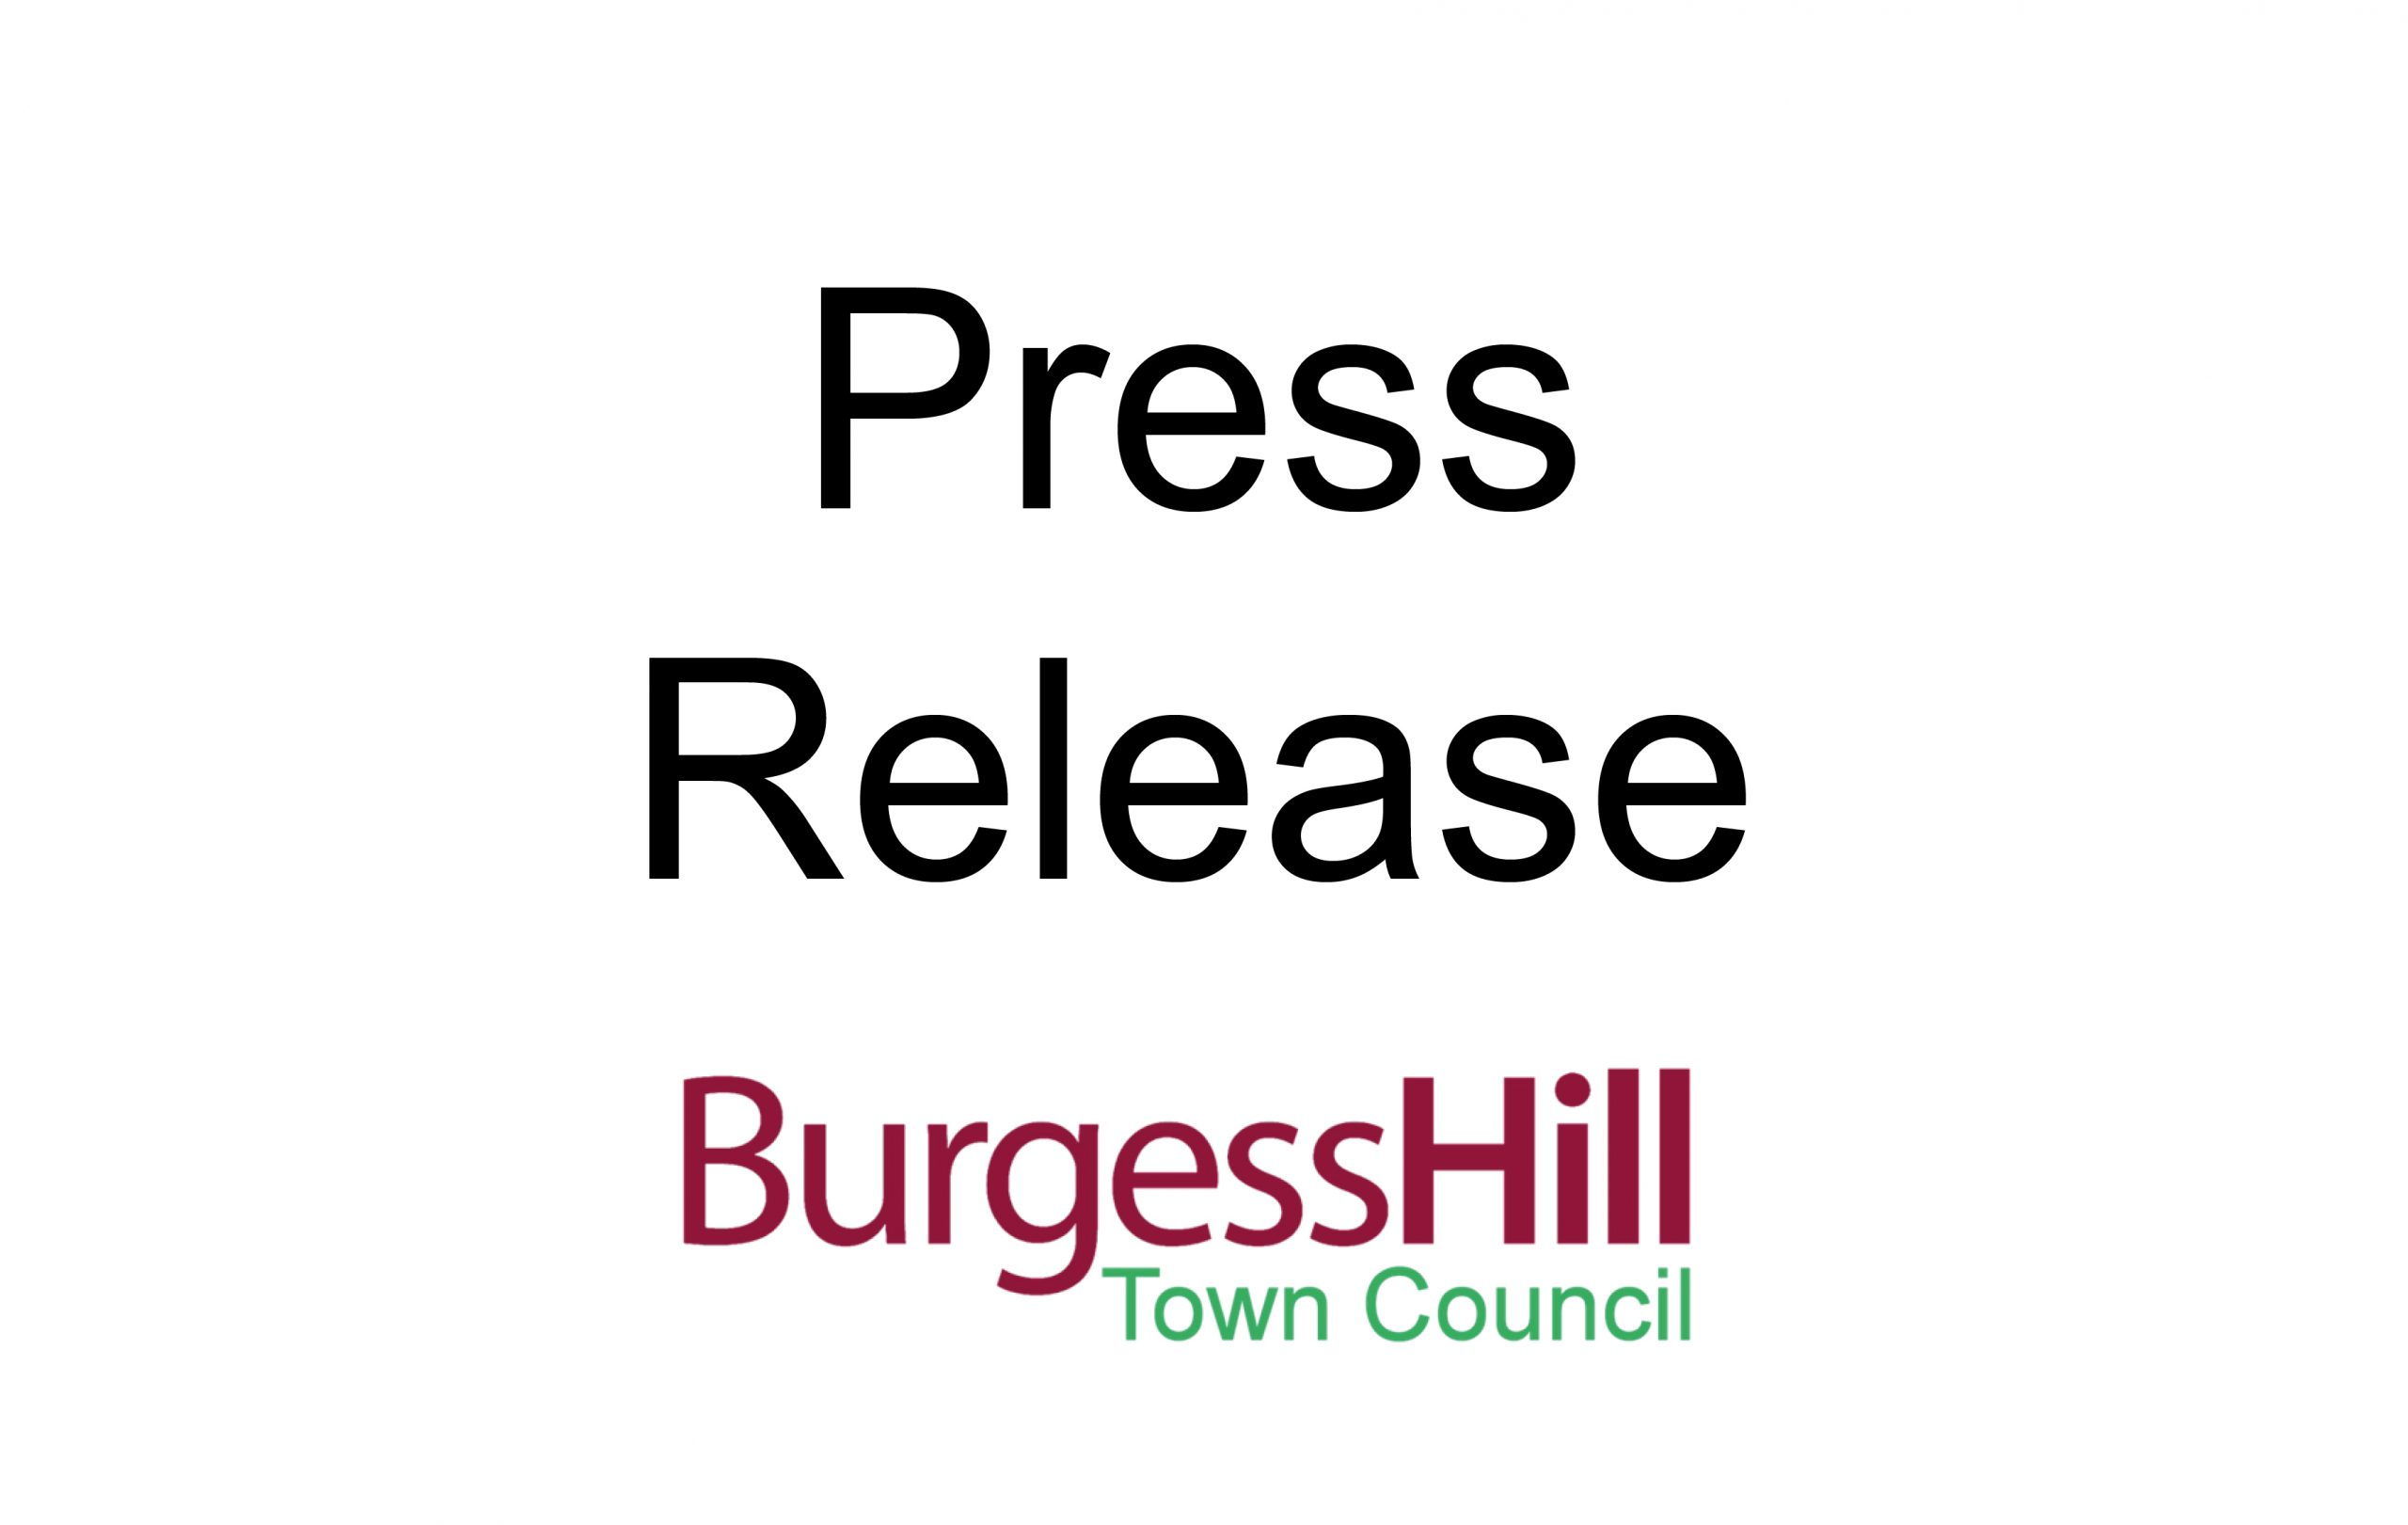 Press Releases and News